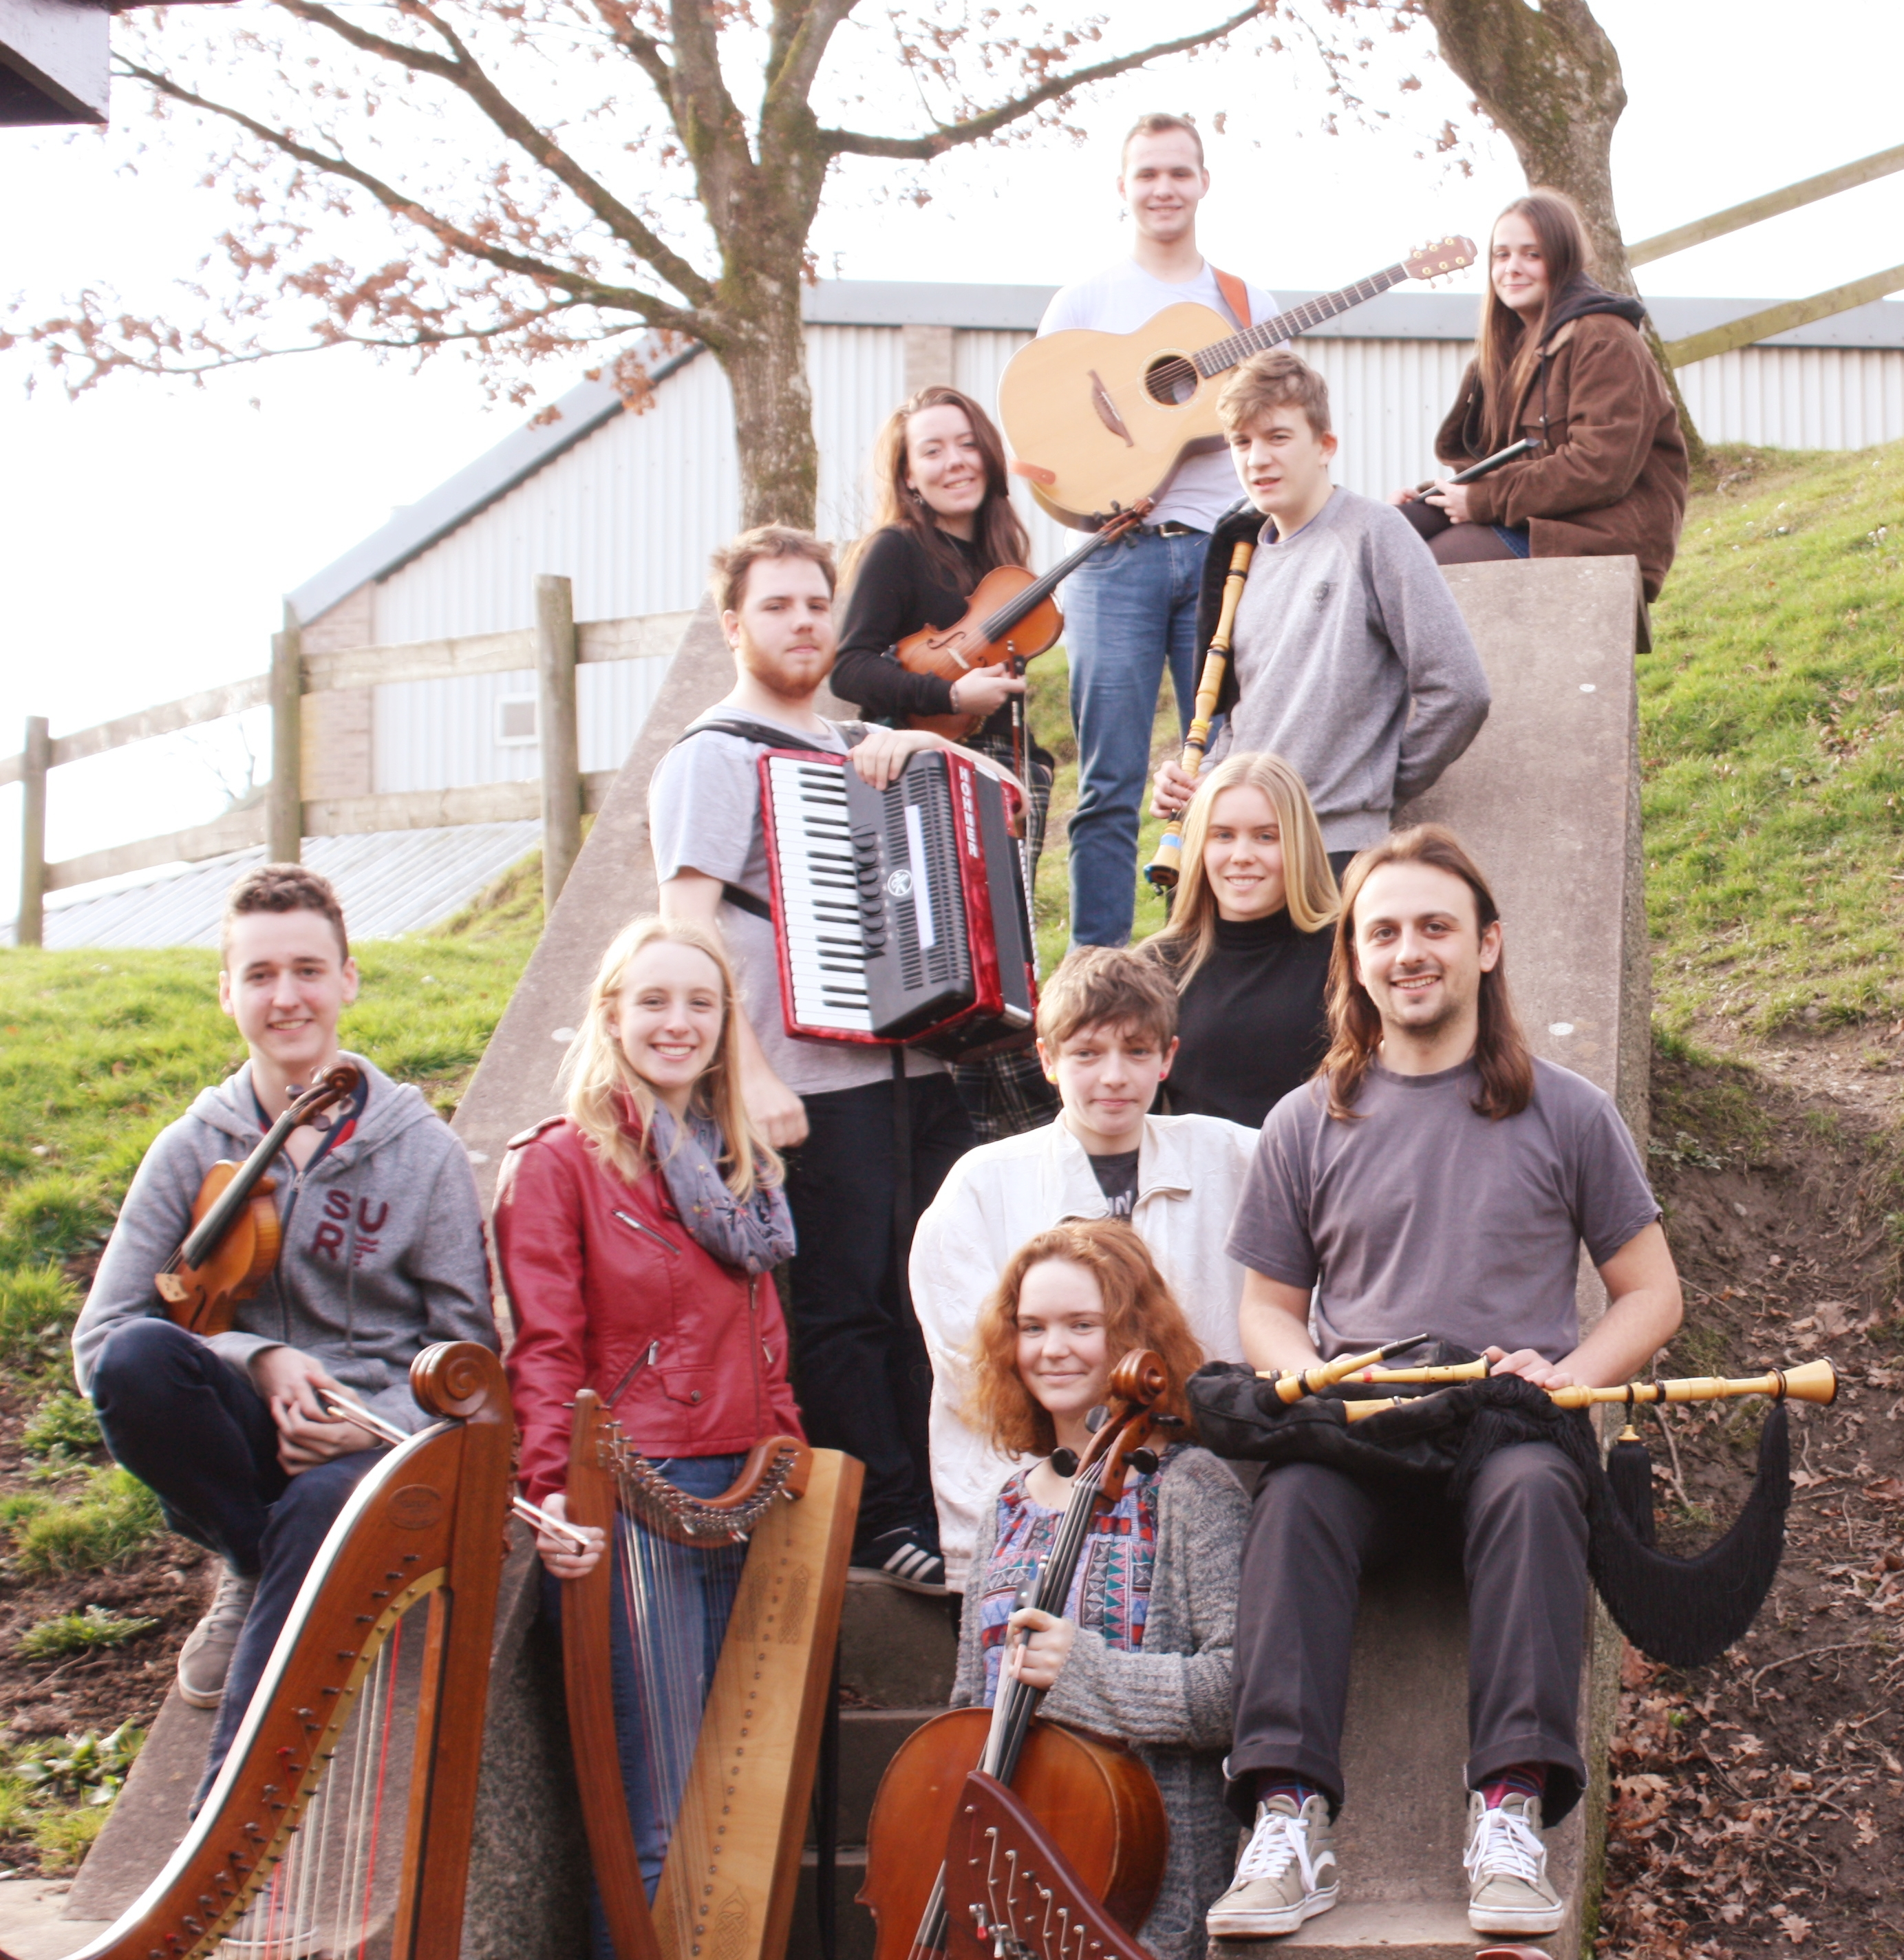 AVANC: The Youth Folk Ensemble of Wales